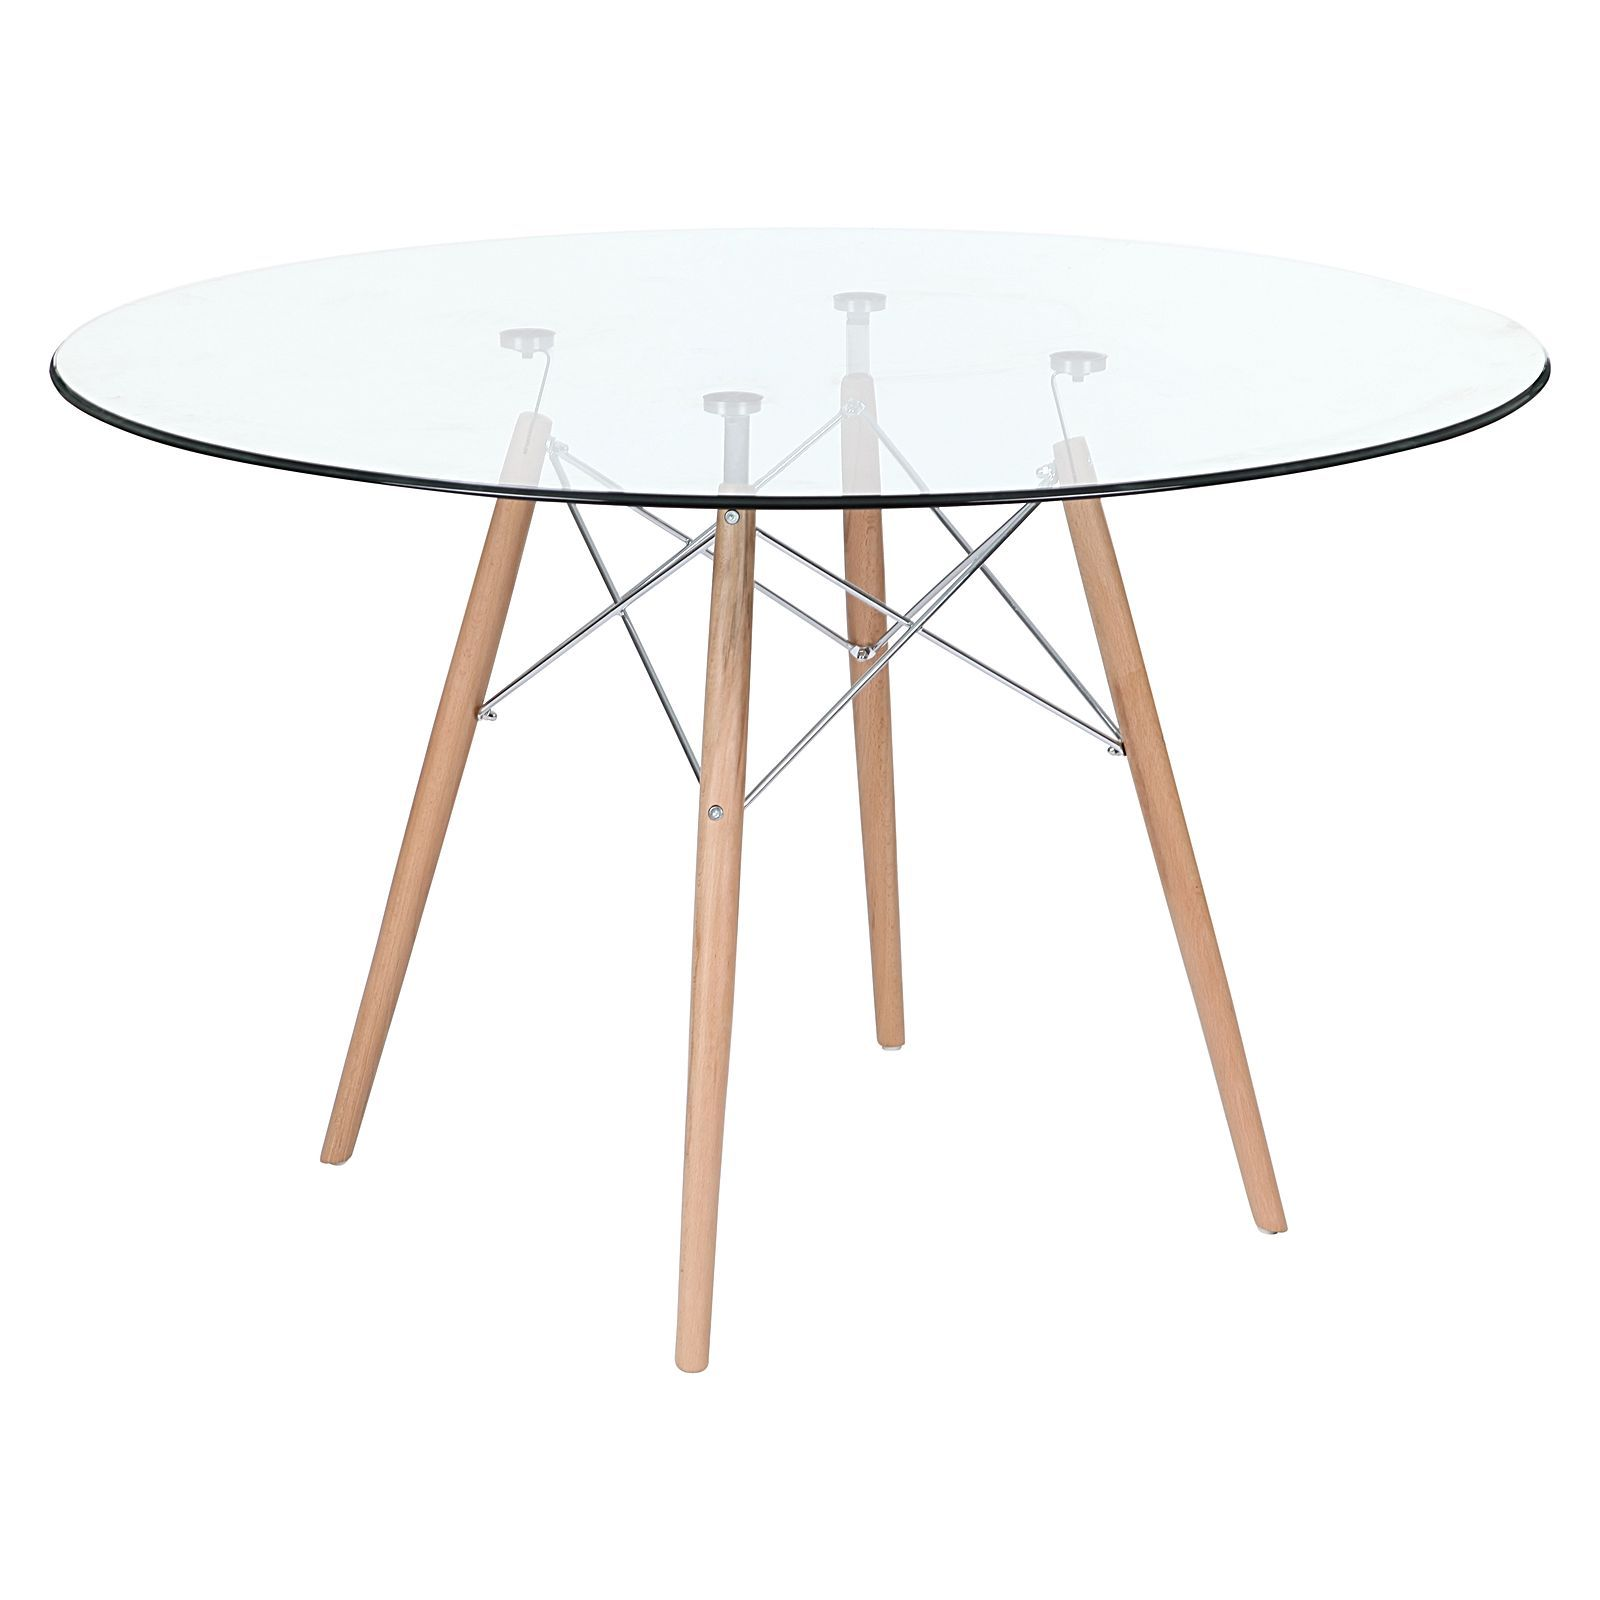 Replica Eames Eiffel Dsw Glass Dining Table By Replica Charles